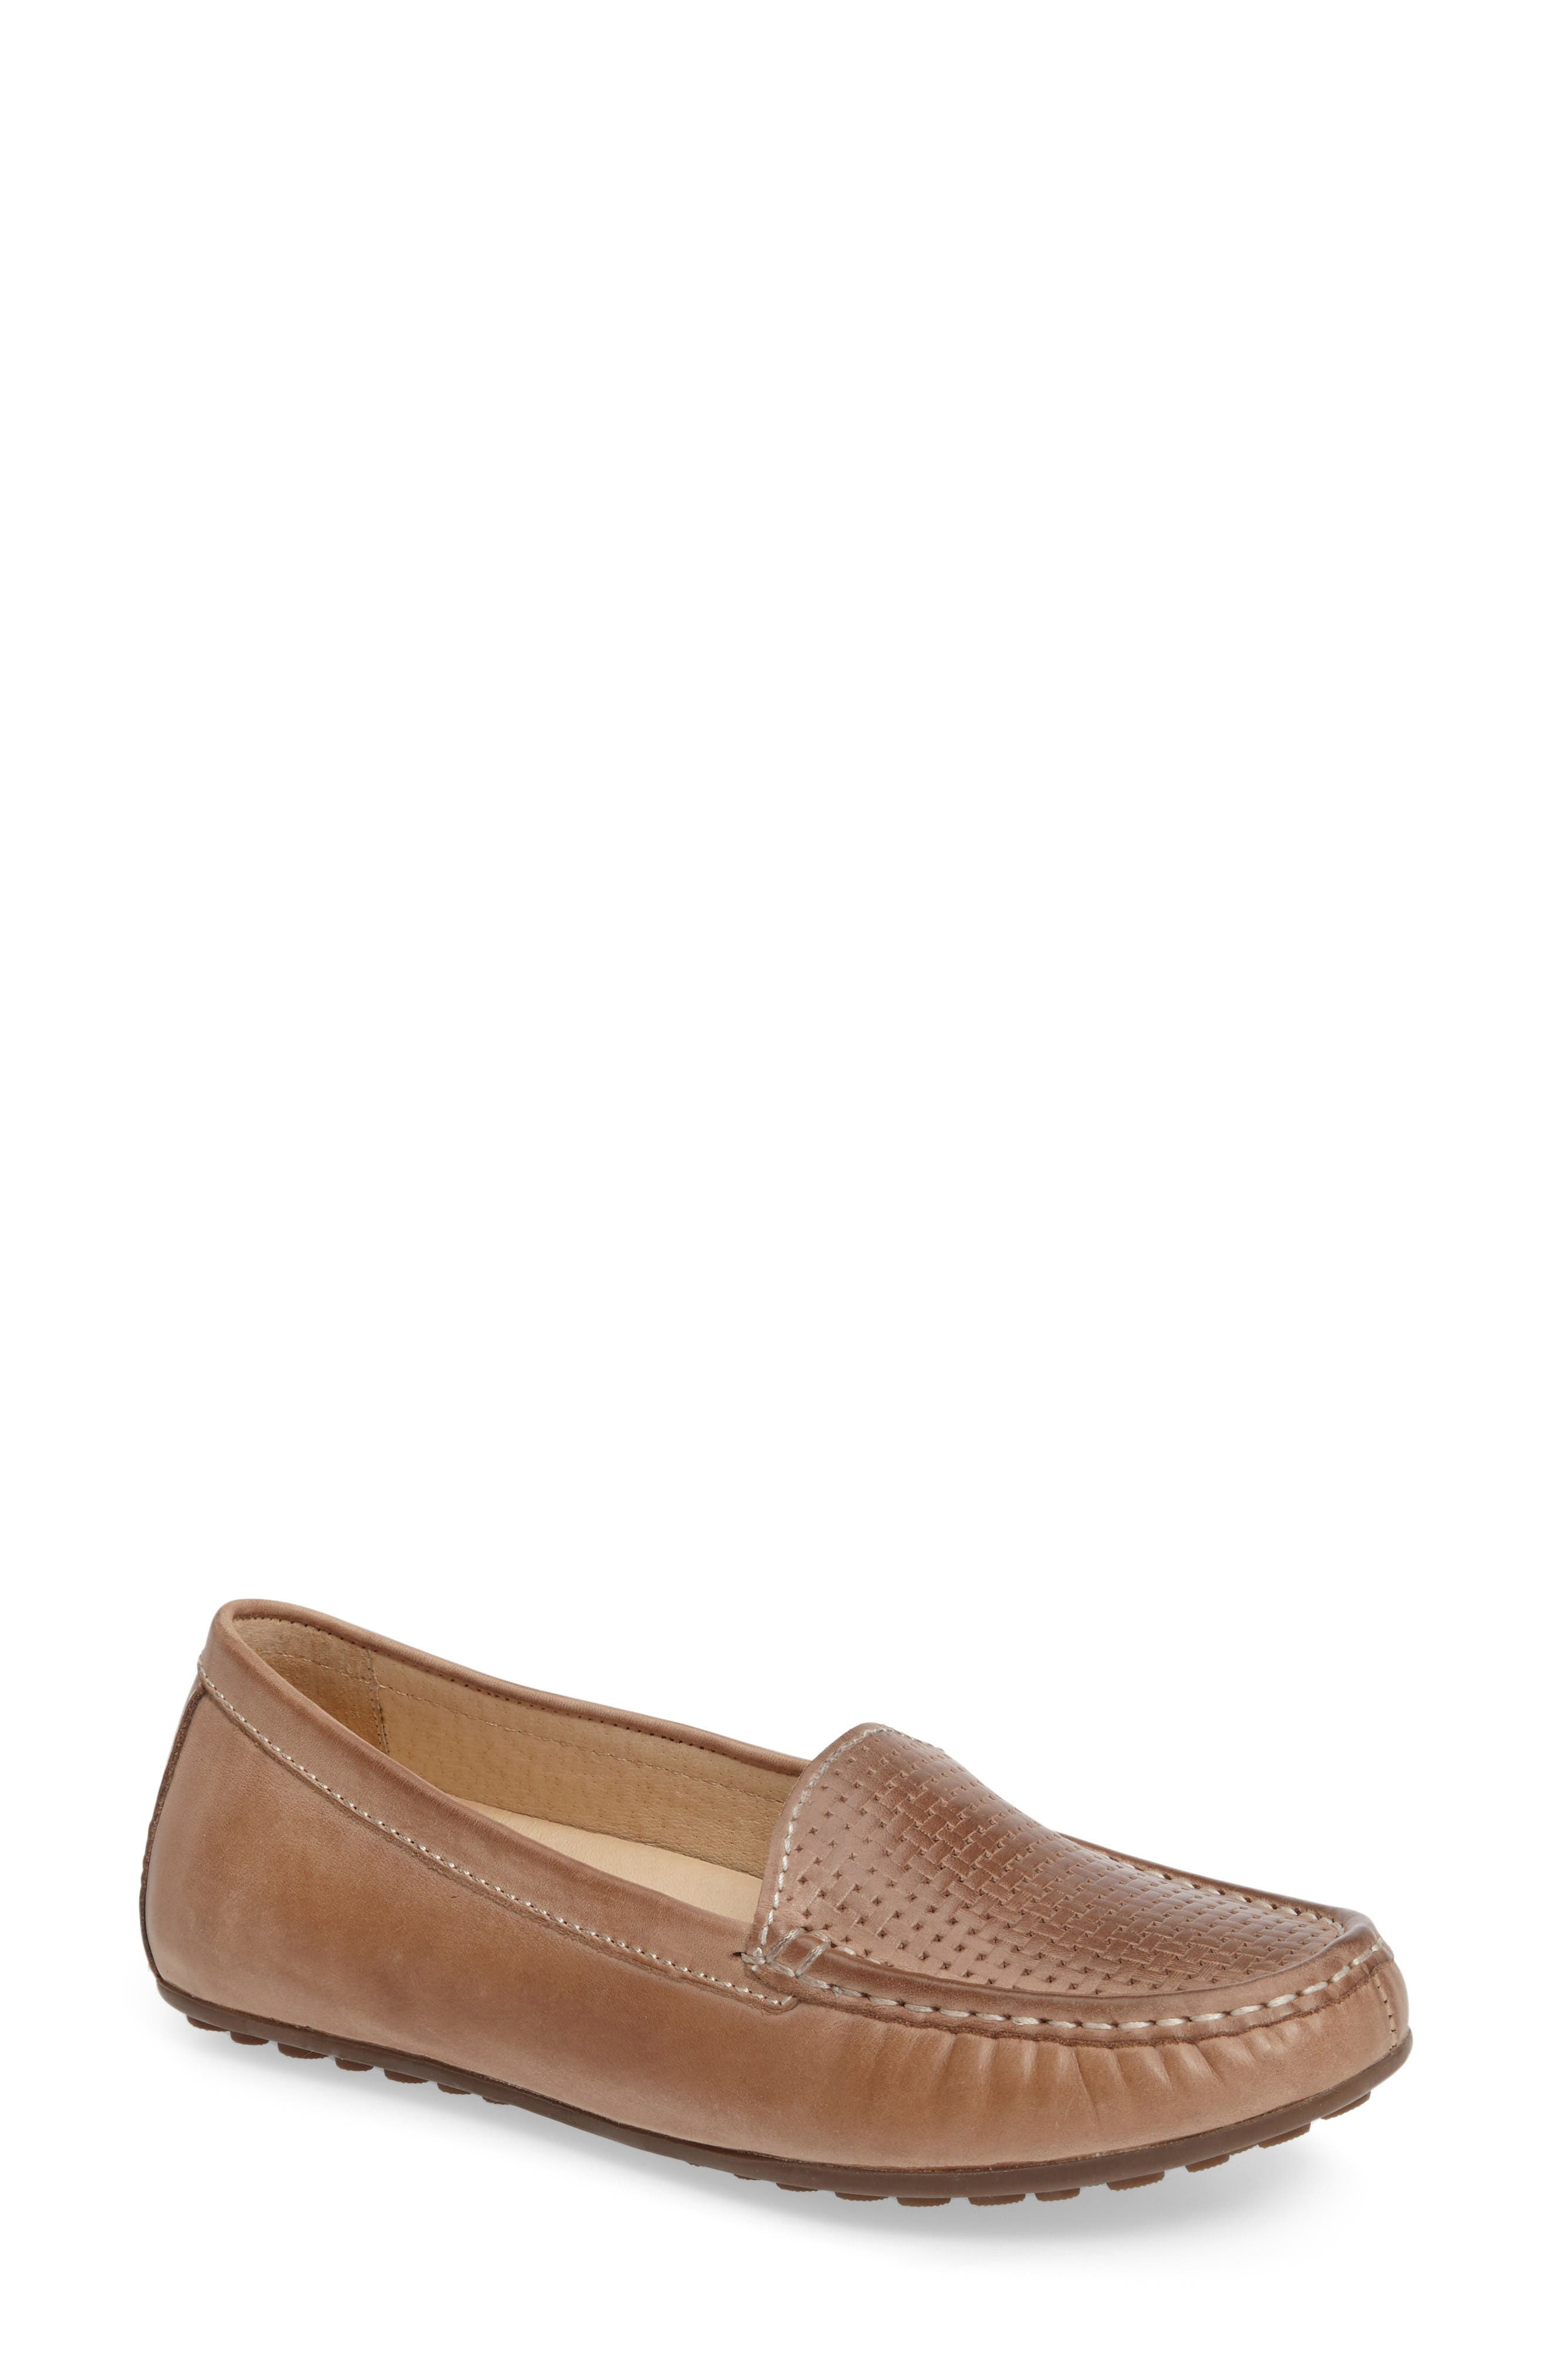 David Tate Lana Loafer (Women)